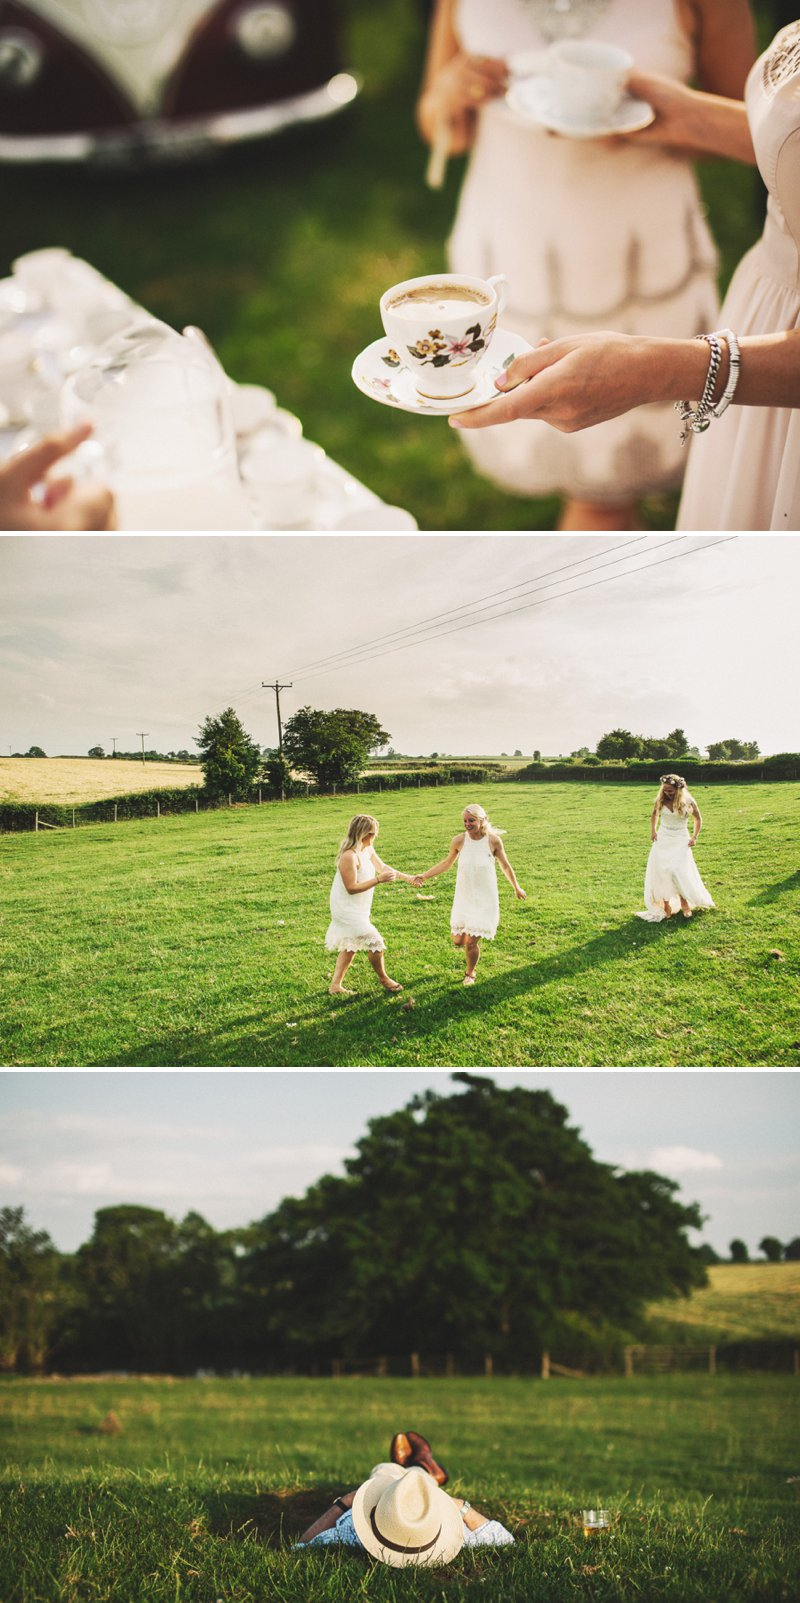 Rustic Marquee Wedding At Mallard Grange In Yorkshire With A Dusty Pink, Cream And Grey Colour Scheme With Bride In Gown From Eternity Bridal With A Vintage VW Camper Van 8